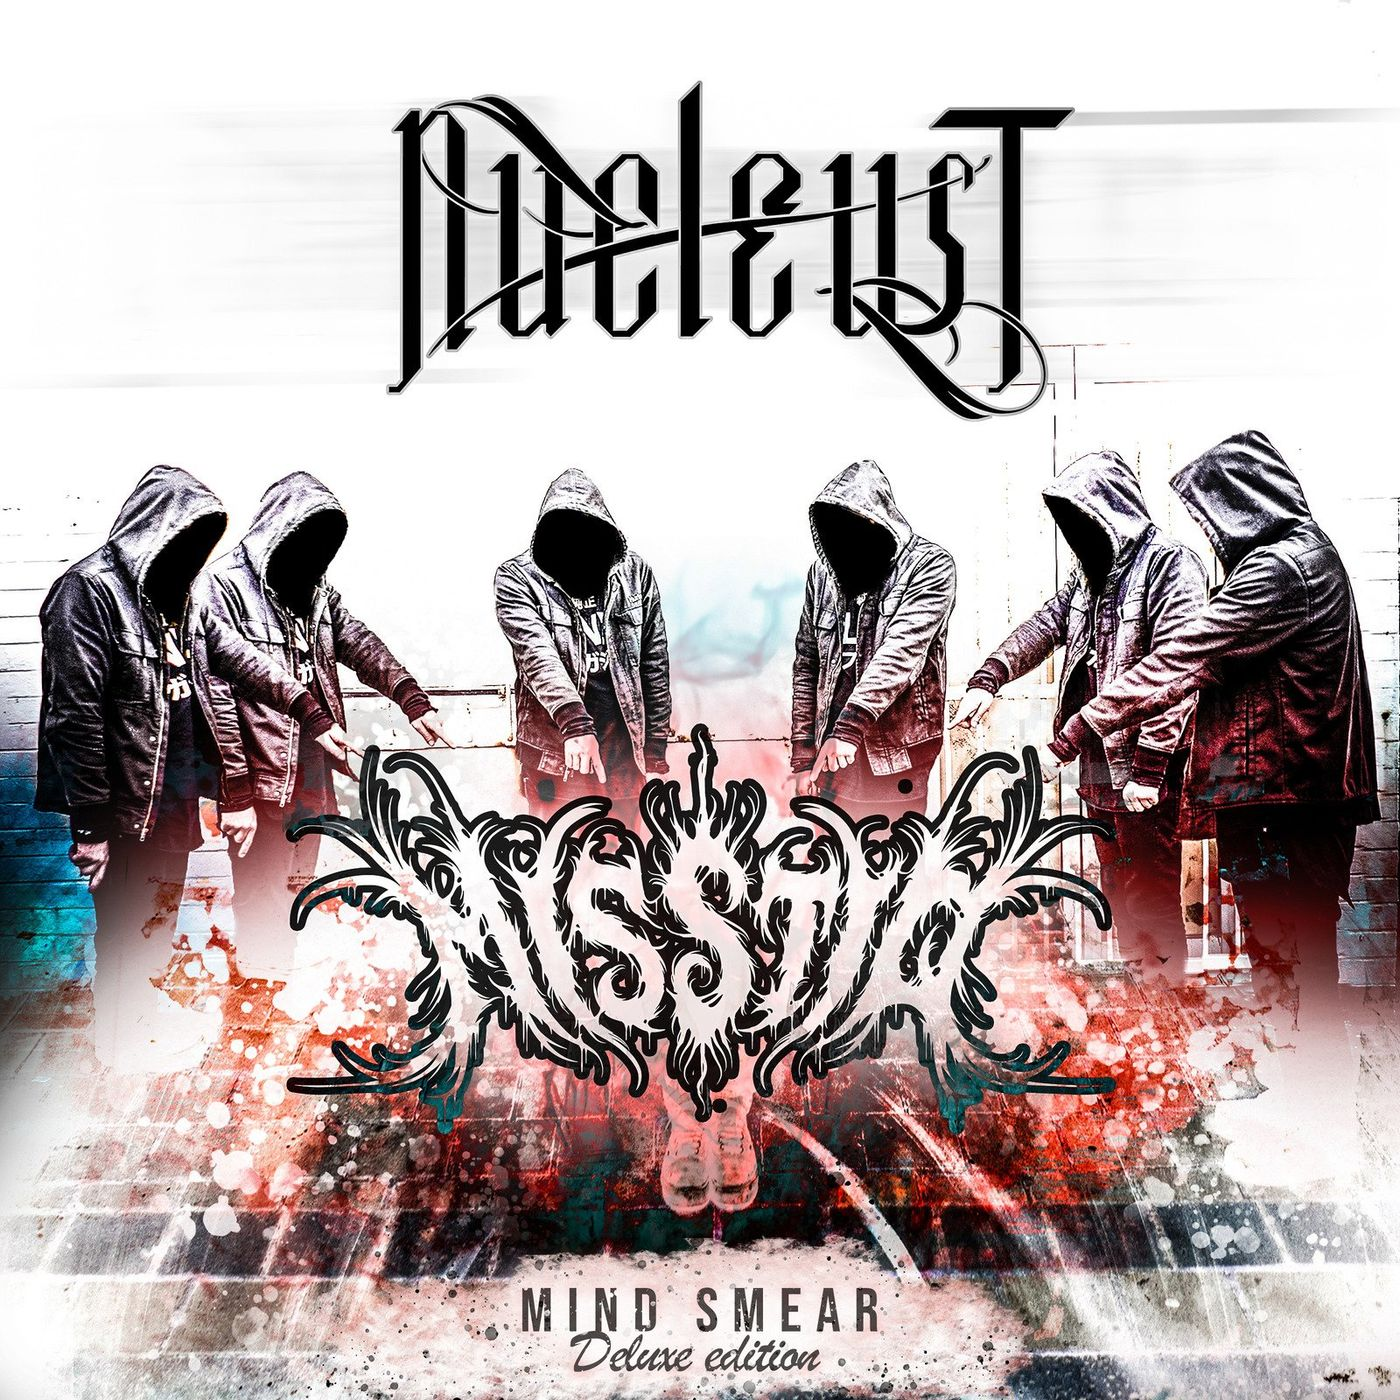 Nucleust - Mind Smear (Deluxe Edition) [single] (2020)